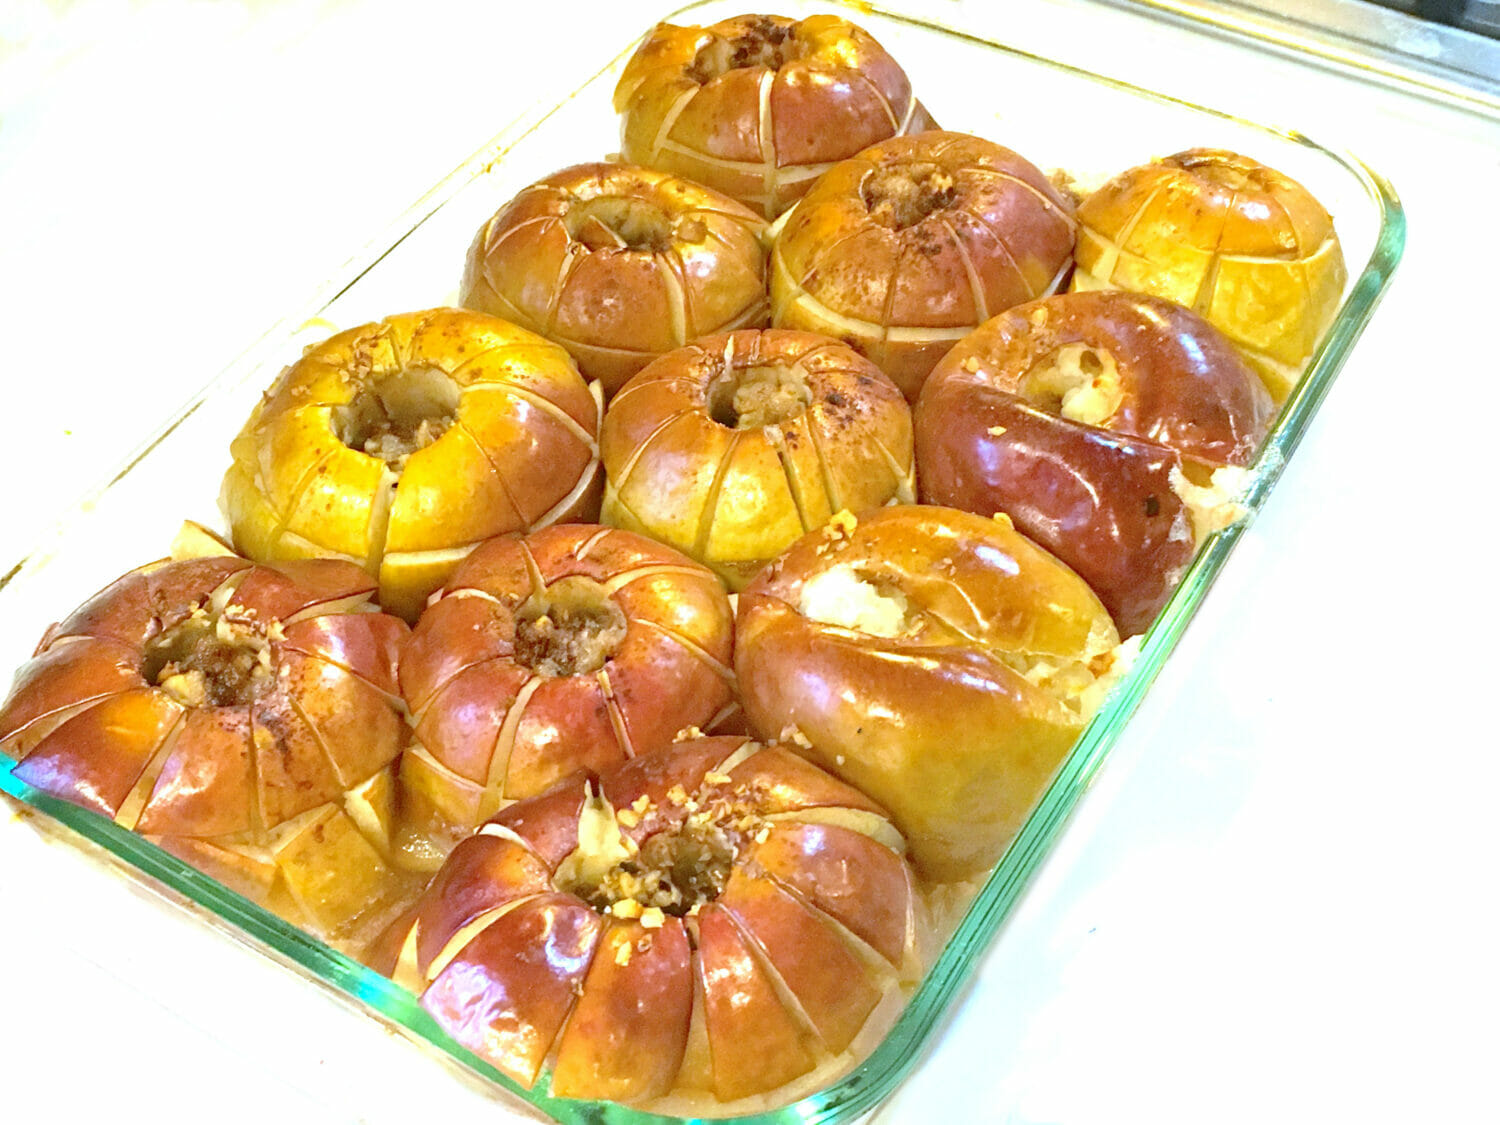 Old-fashioned oven baked apples are the perfect prep-ahead holiday breakfast or dessert whose aroma will warm your home and heart.